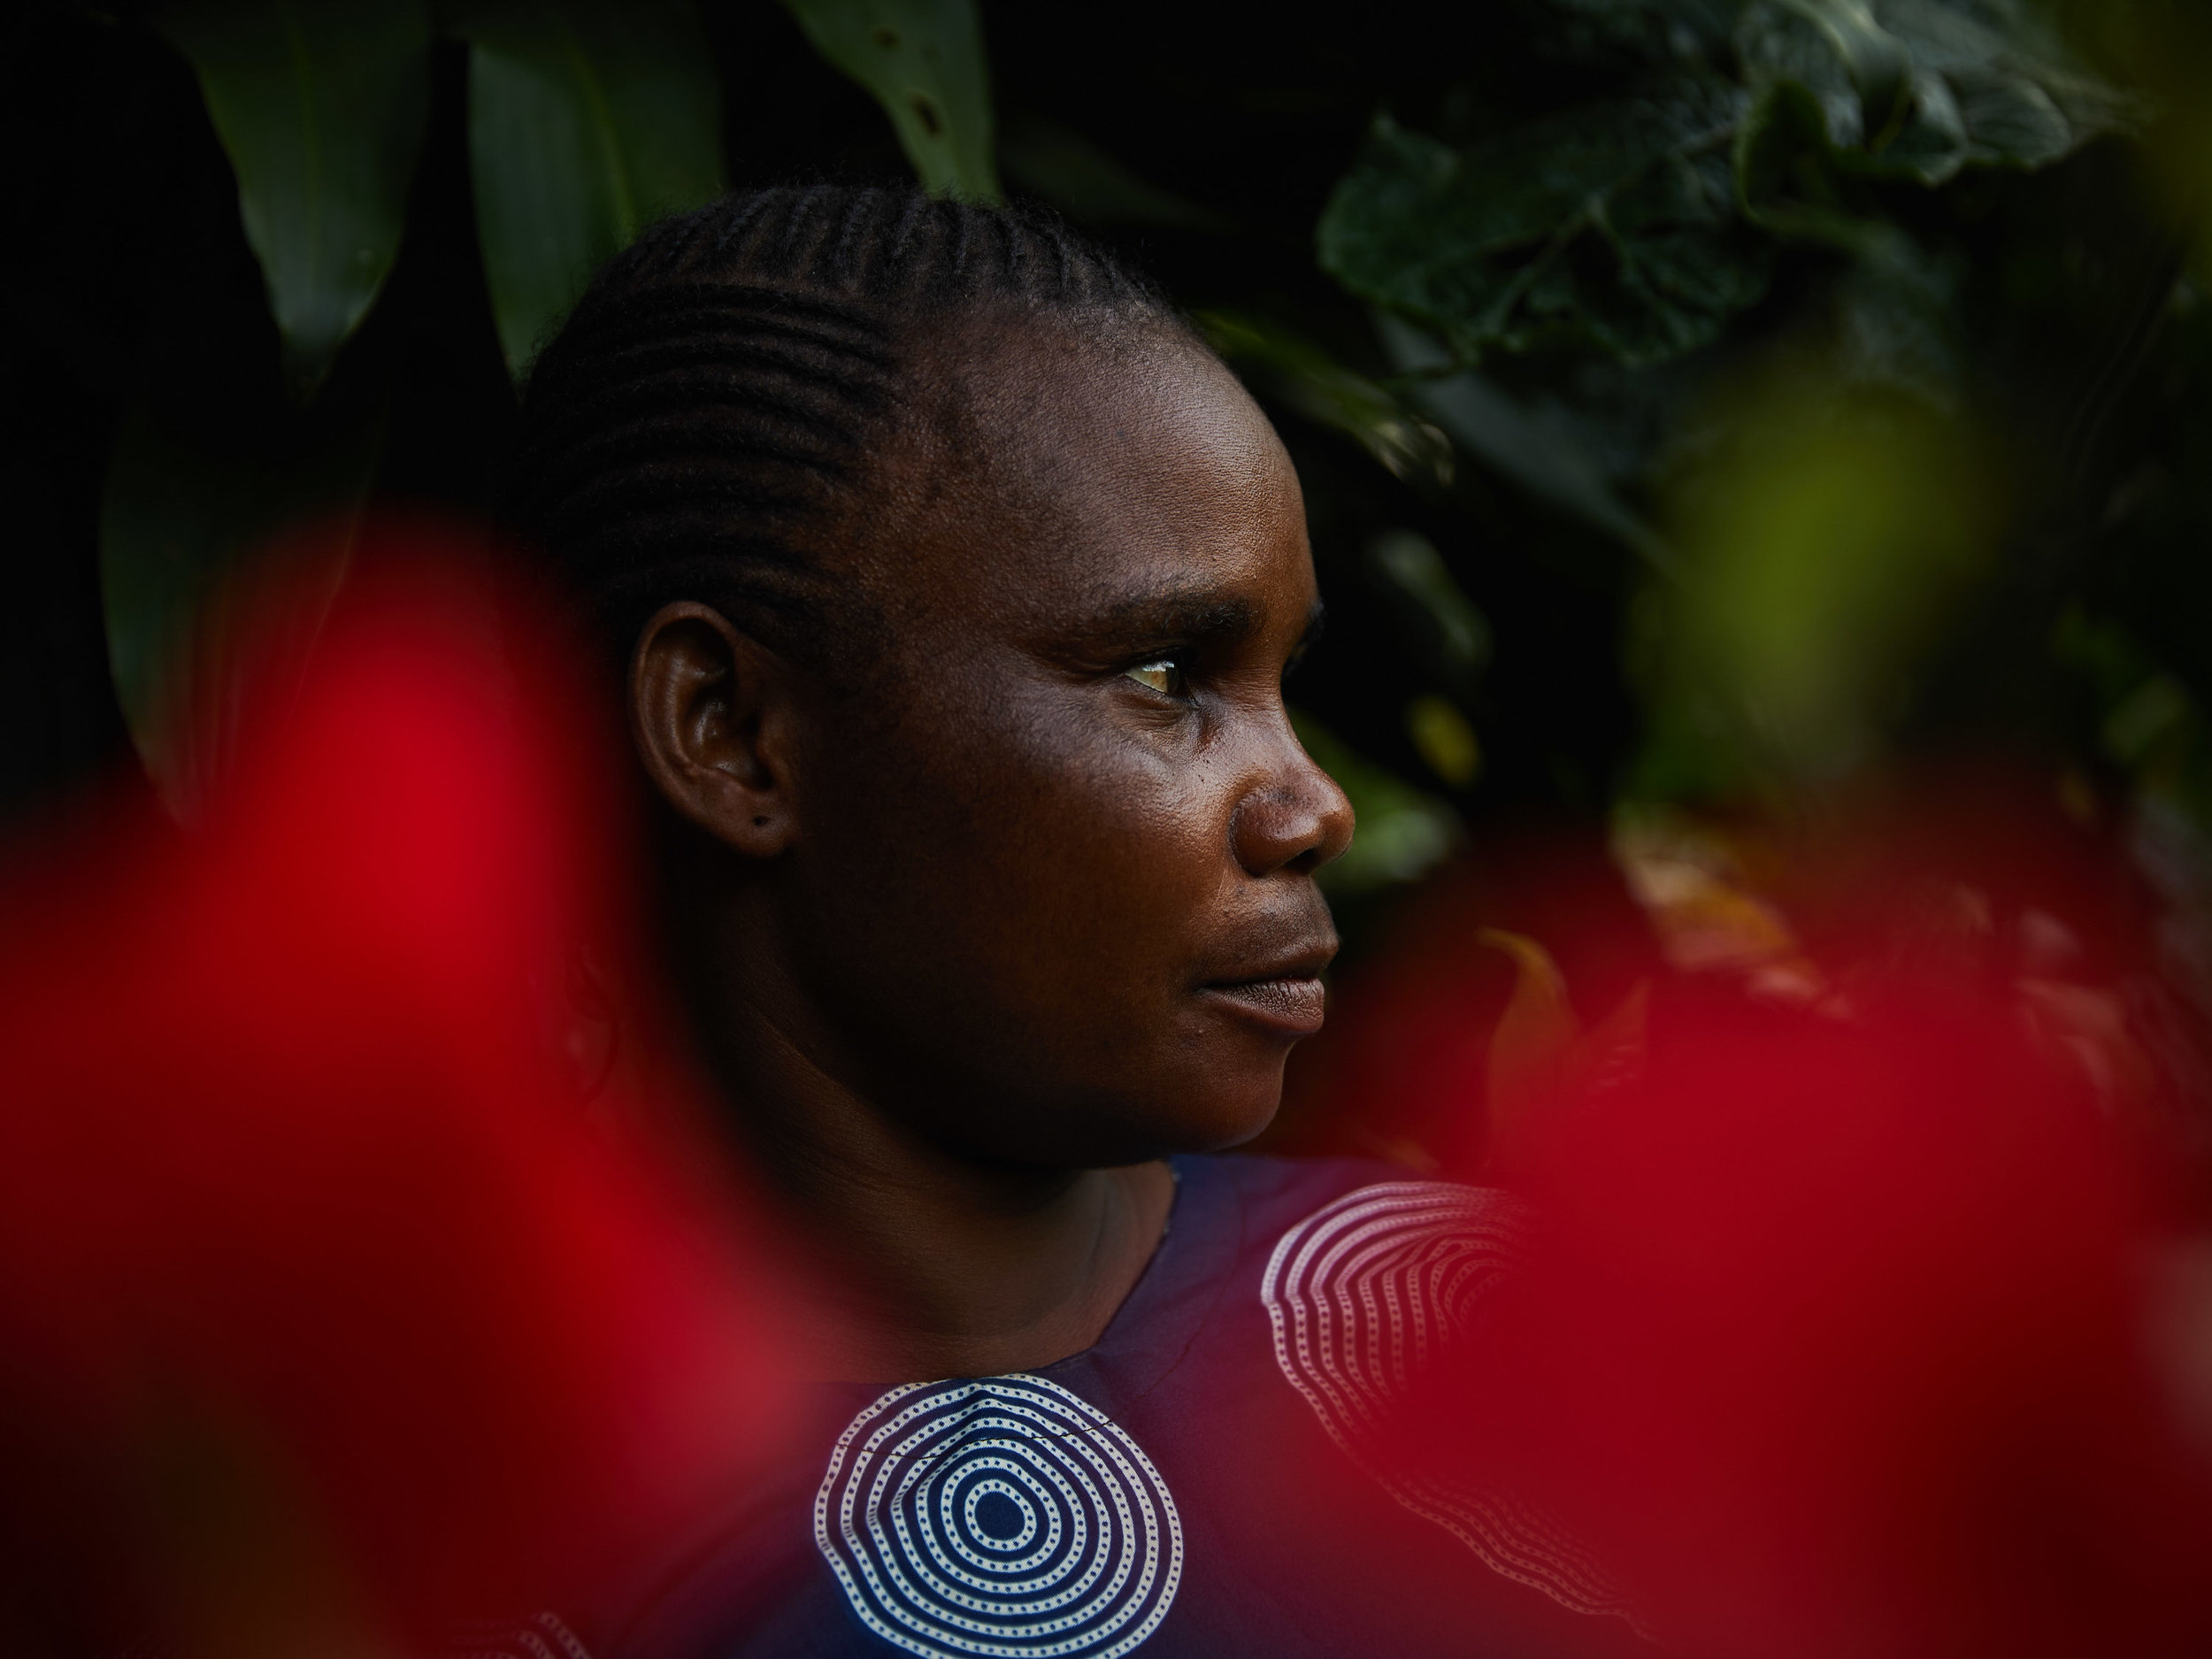 Monique Dongo, a victim of snakebite when she was inspecting her land on the outskirts of Mbandaka, Equateur Province. She lost consciousness in the bush, far from any health clinics. Luckily, she made a full recovery.